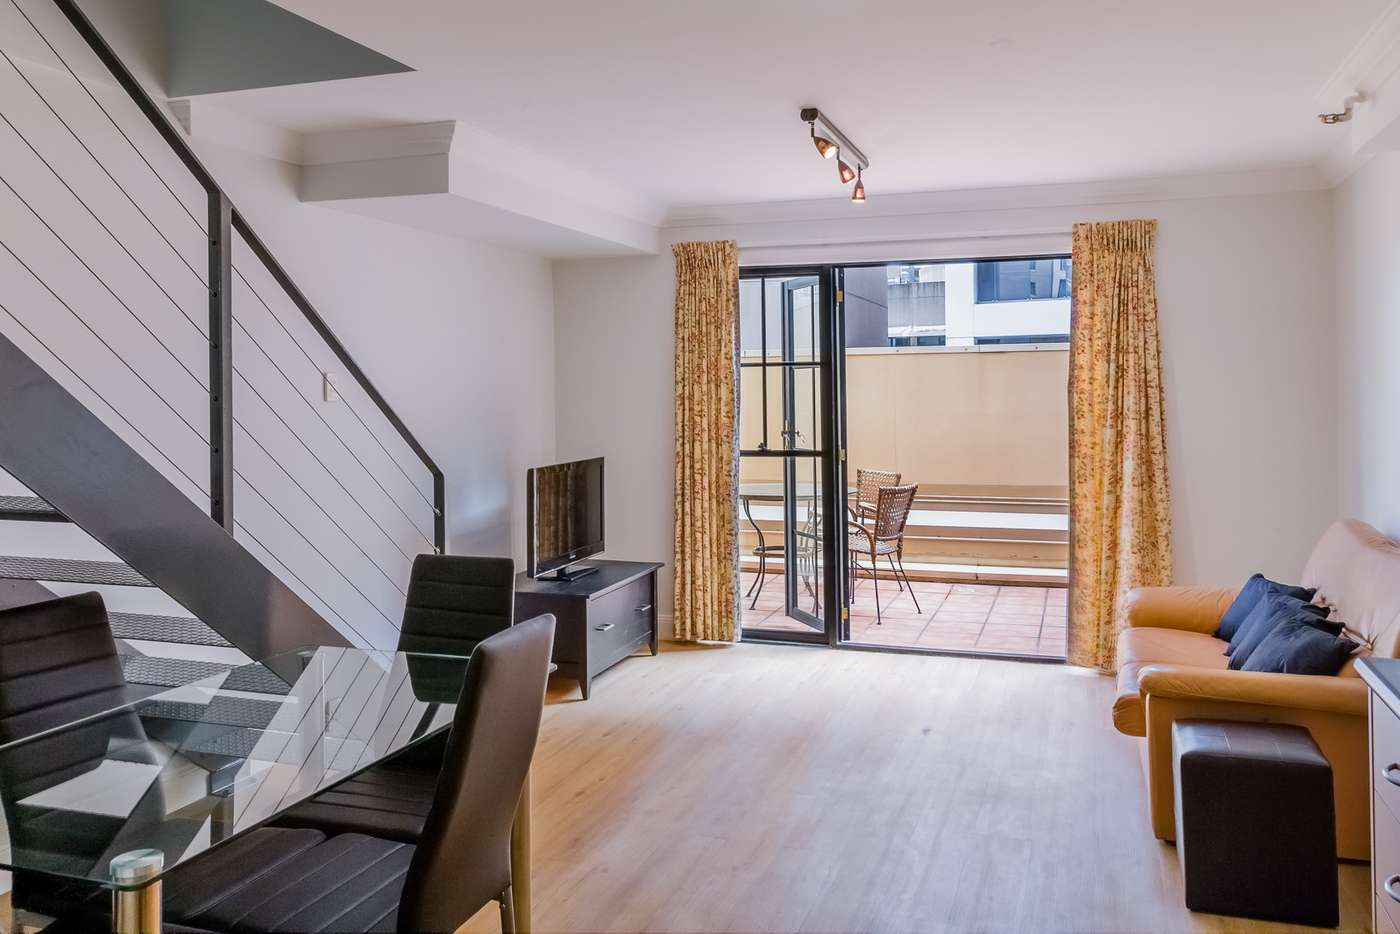 Main view of Homely unit listing, 41/53 EDWARD STREET, Brisbane QLD 4000